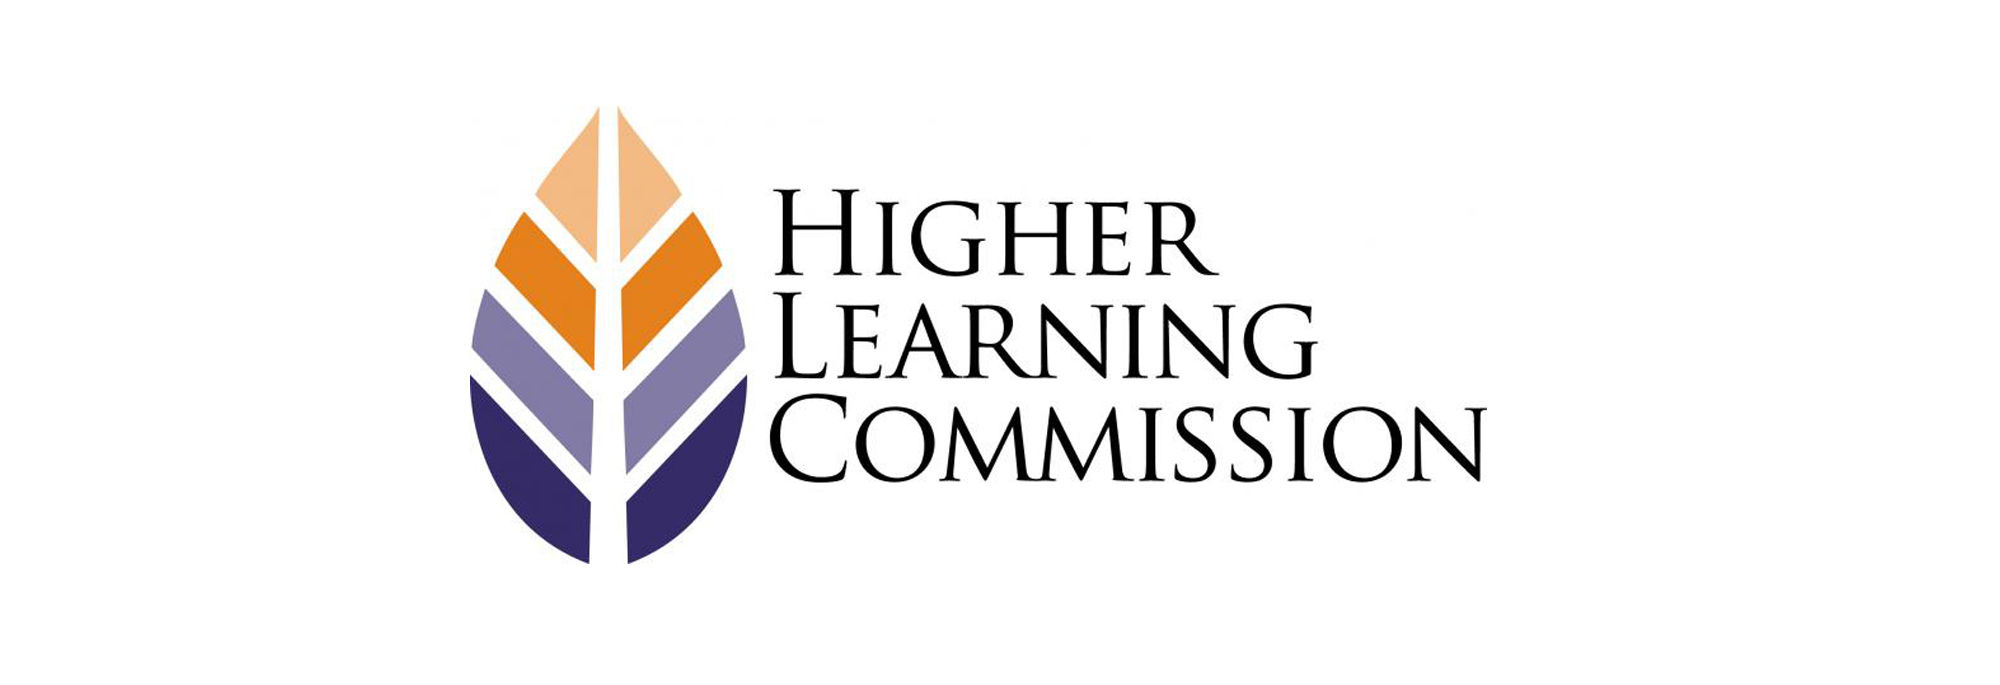 Public Comments Sought for HLC Accreditation